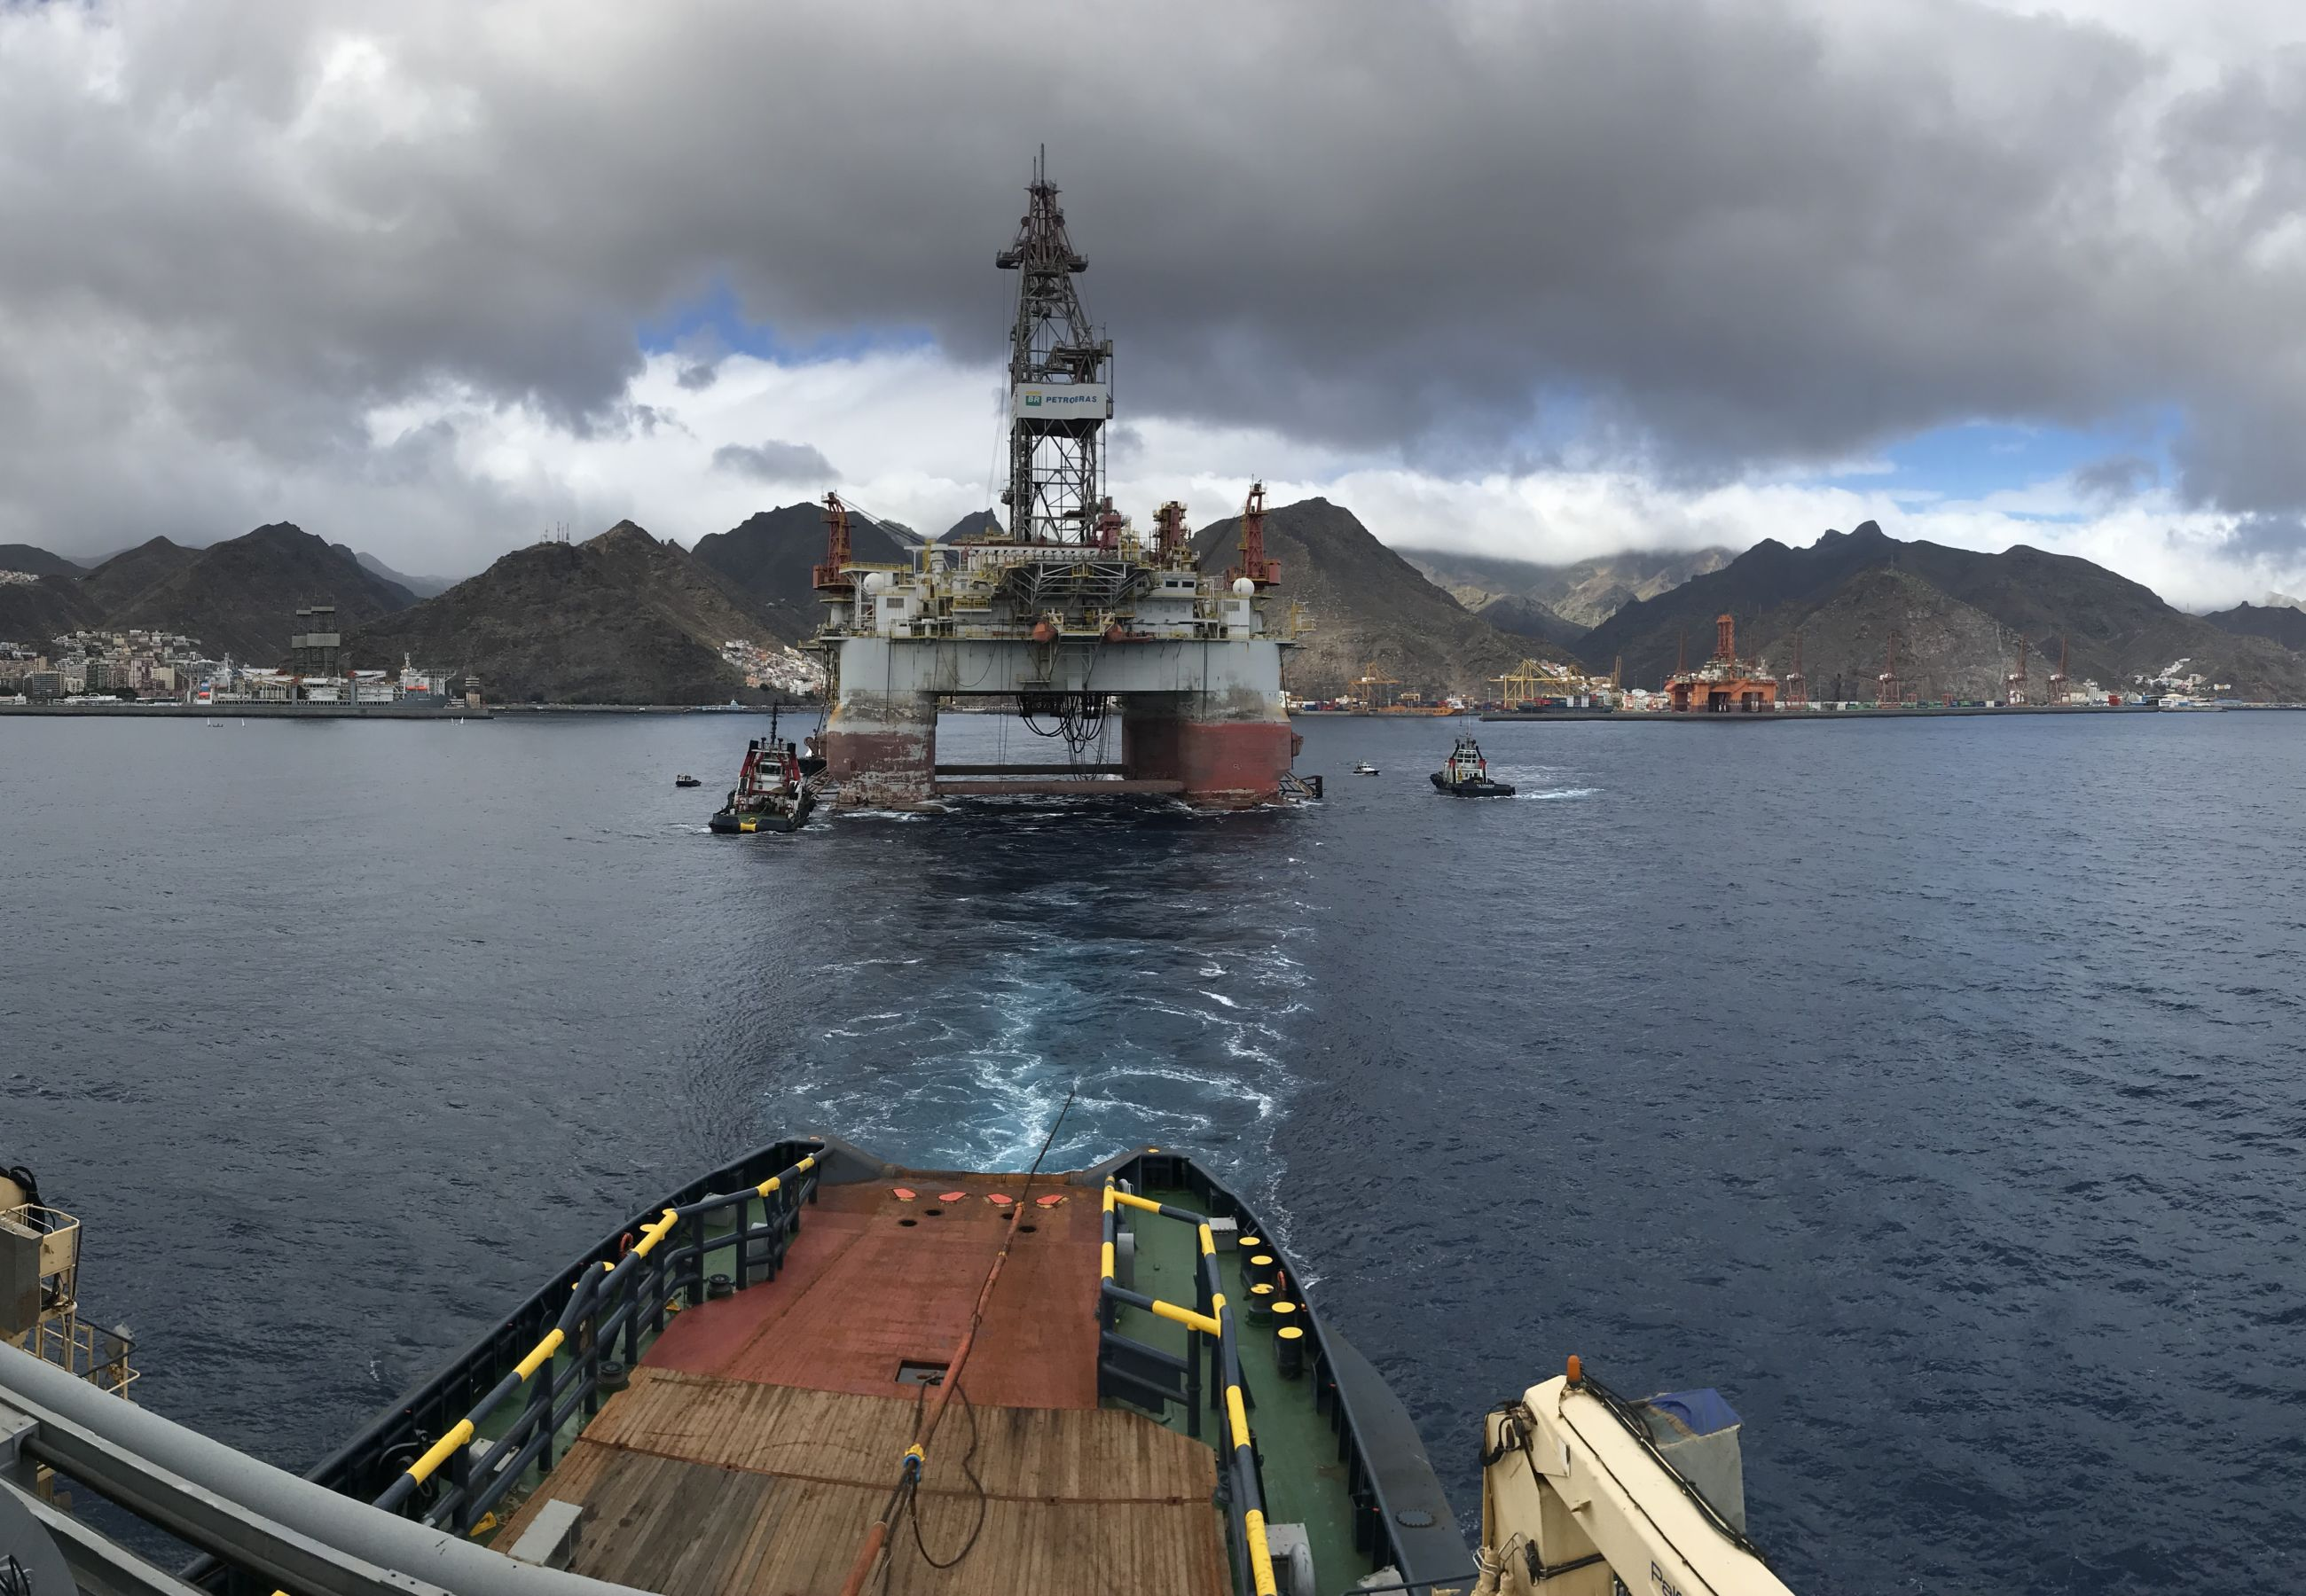 Alp Centre West Taurus Seadrill Rigmove Ssdr Canary Islands 2